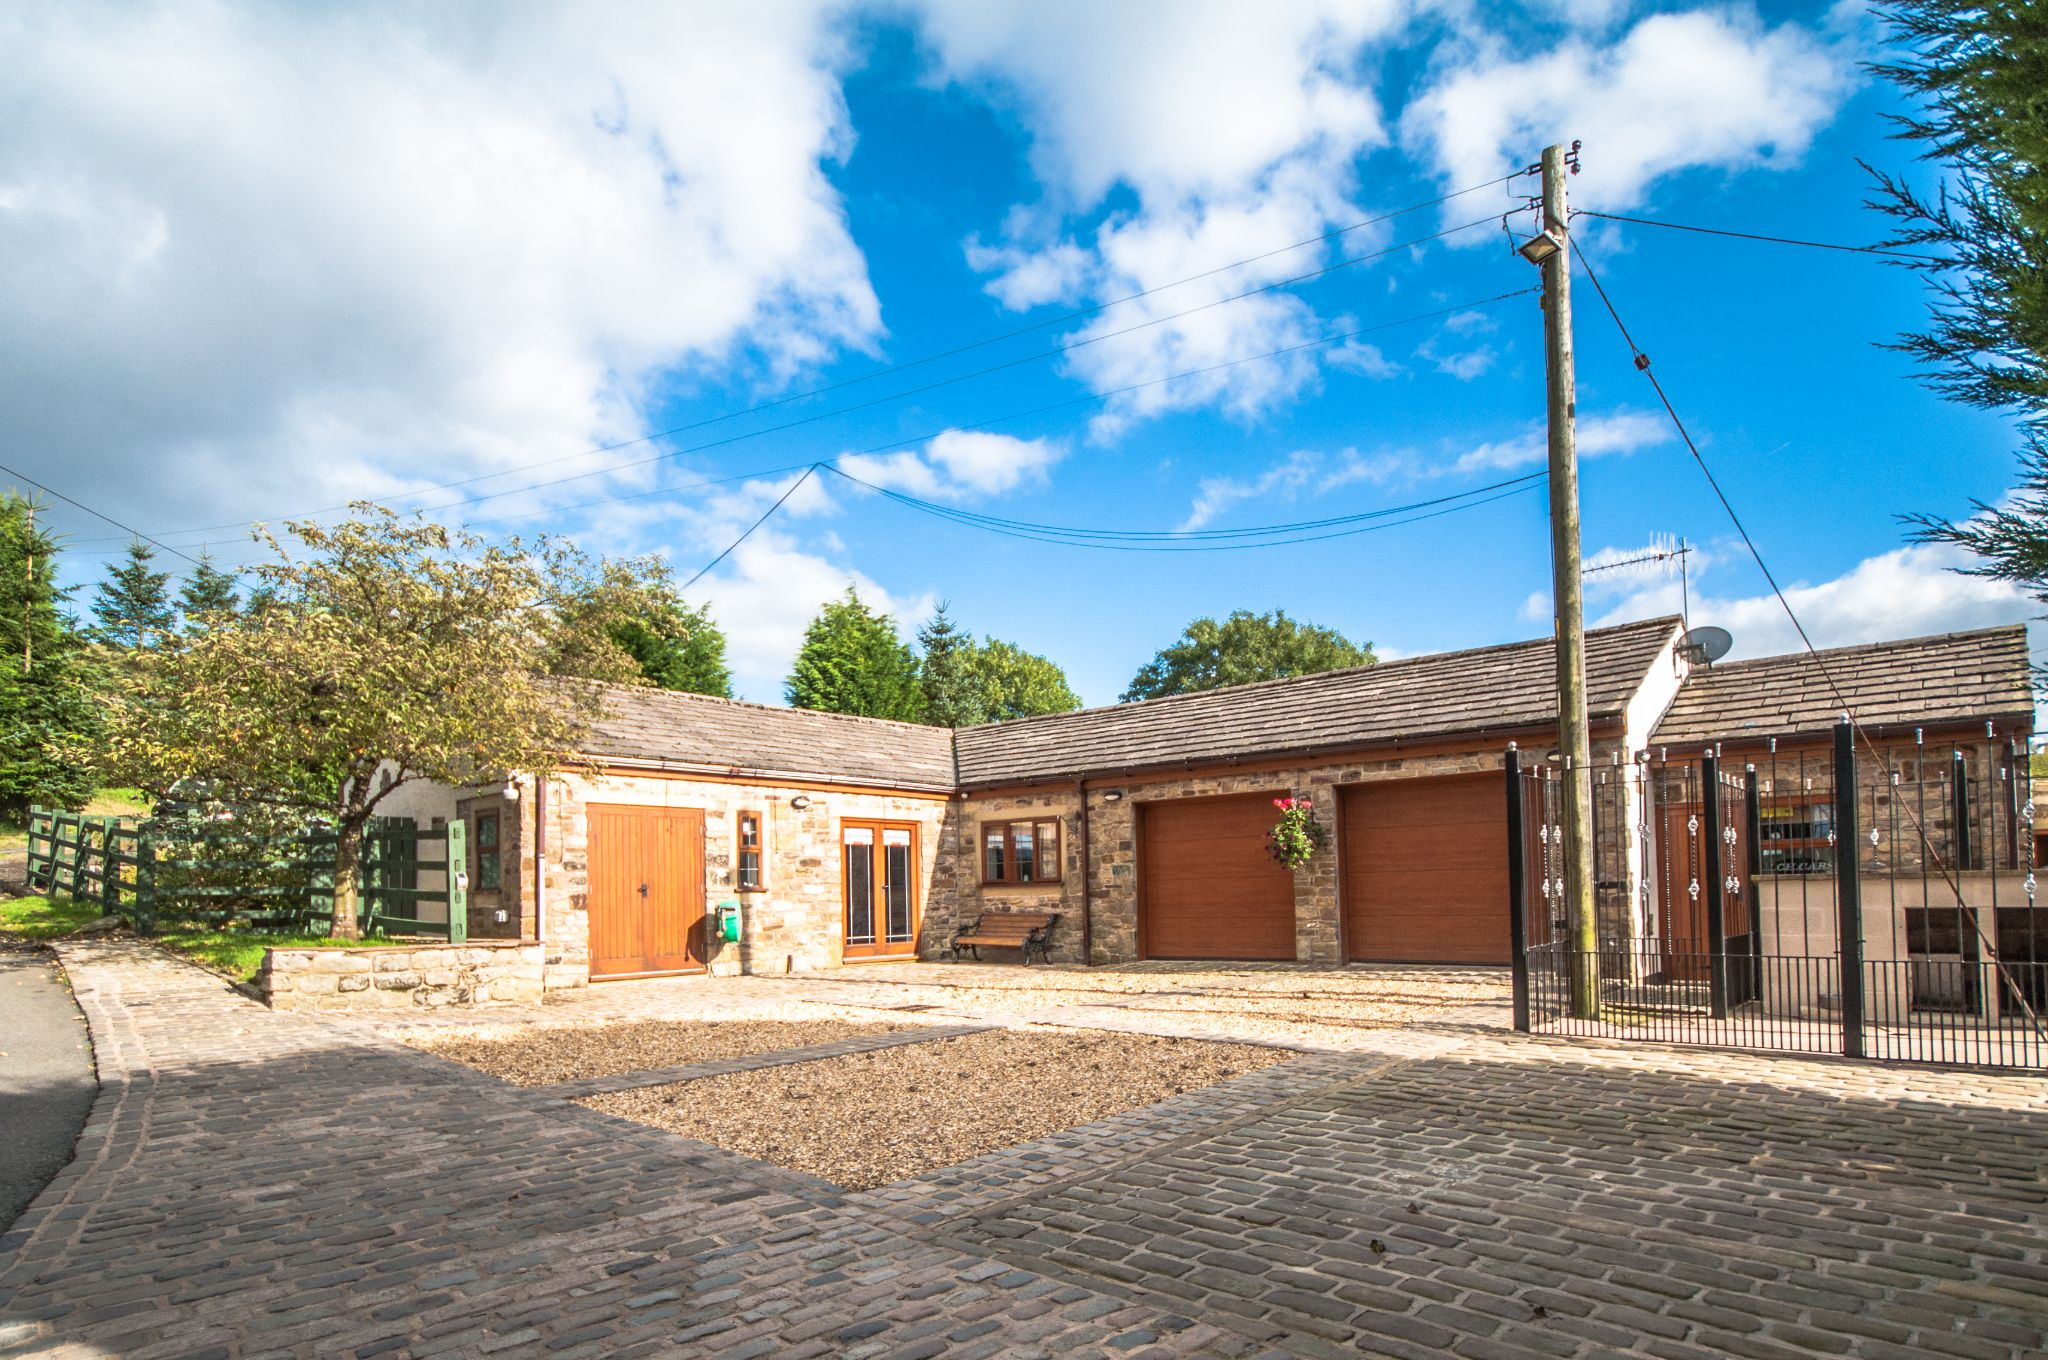 4 bedroom detached house For Sale in Todmorden - The Bungalow (Currently used as Entertainment Suite